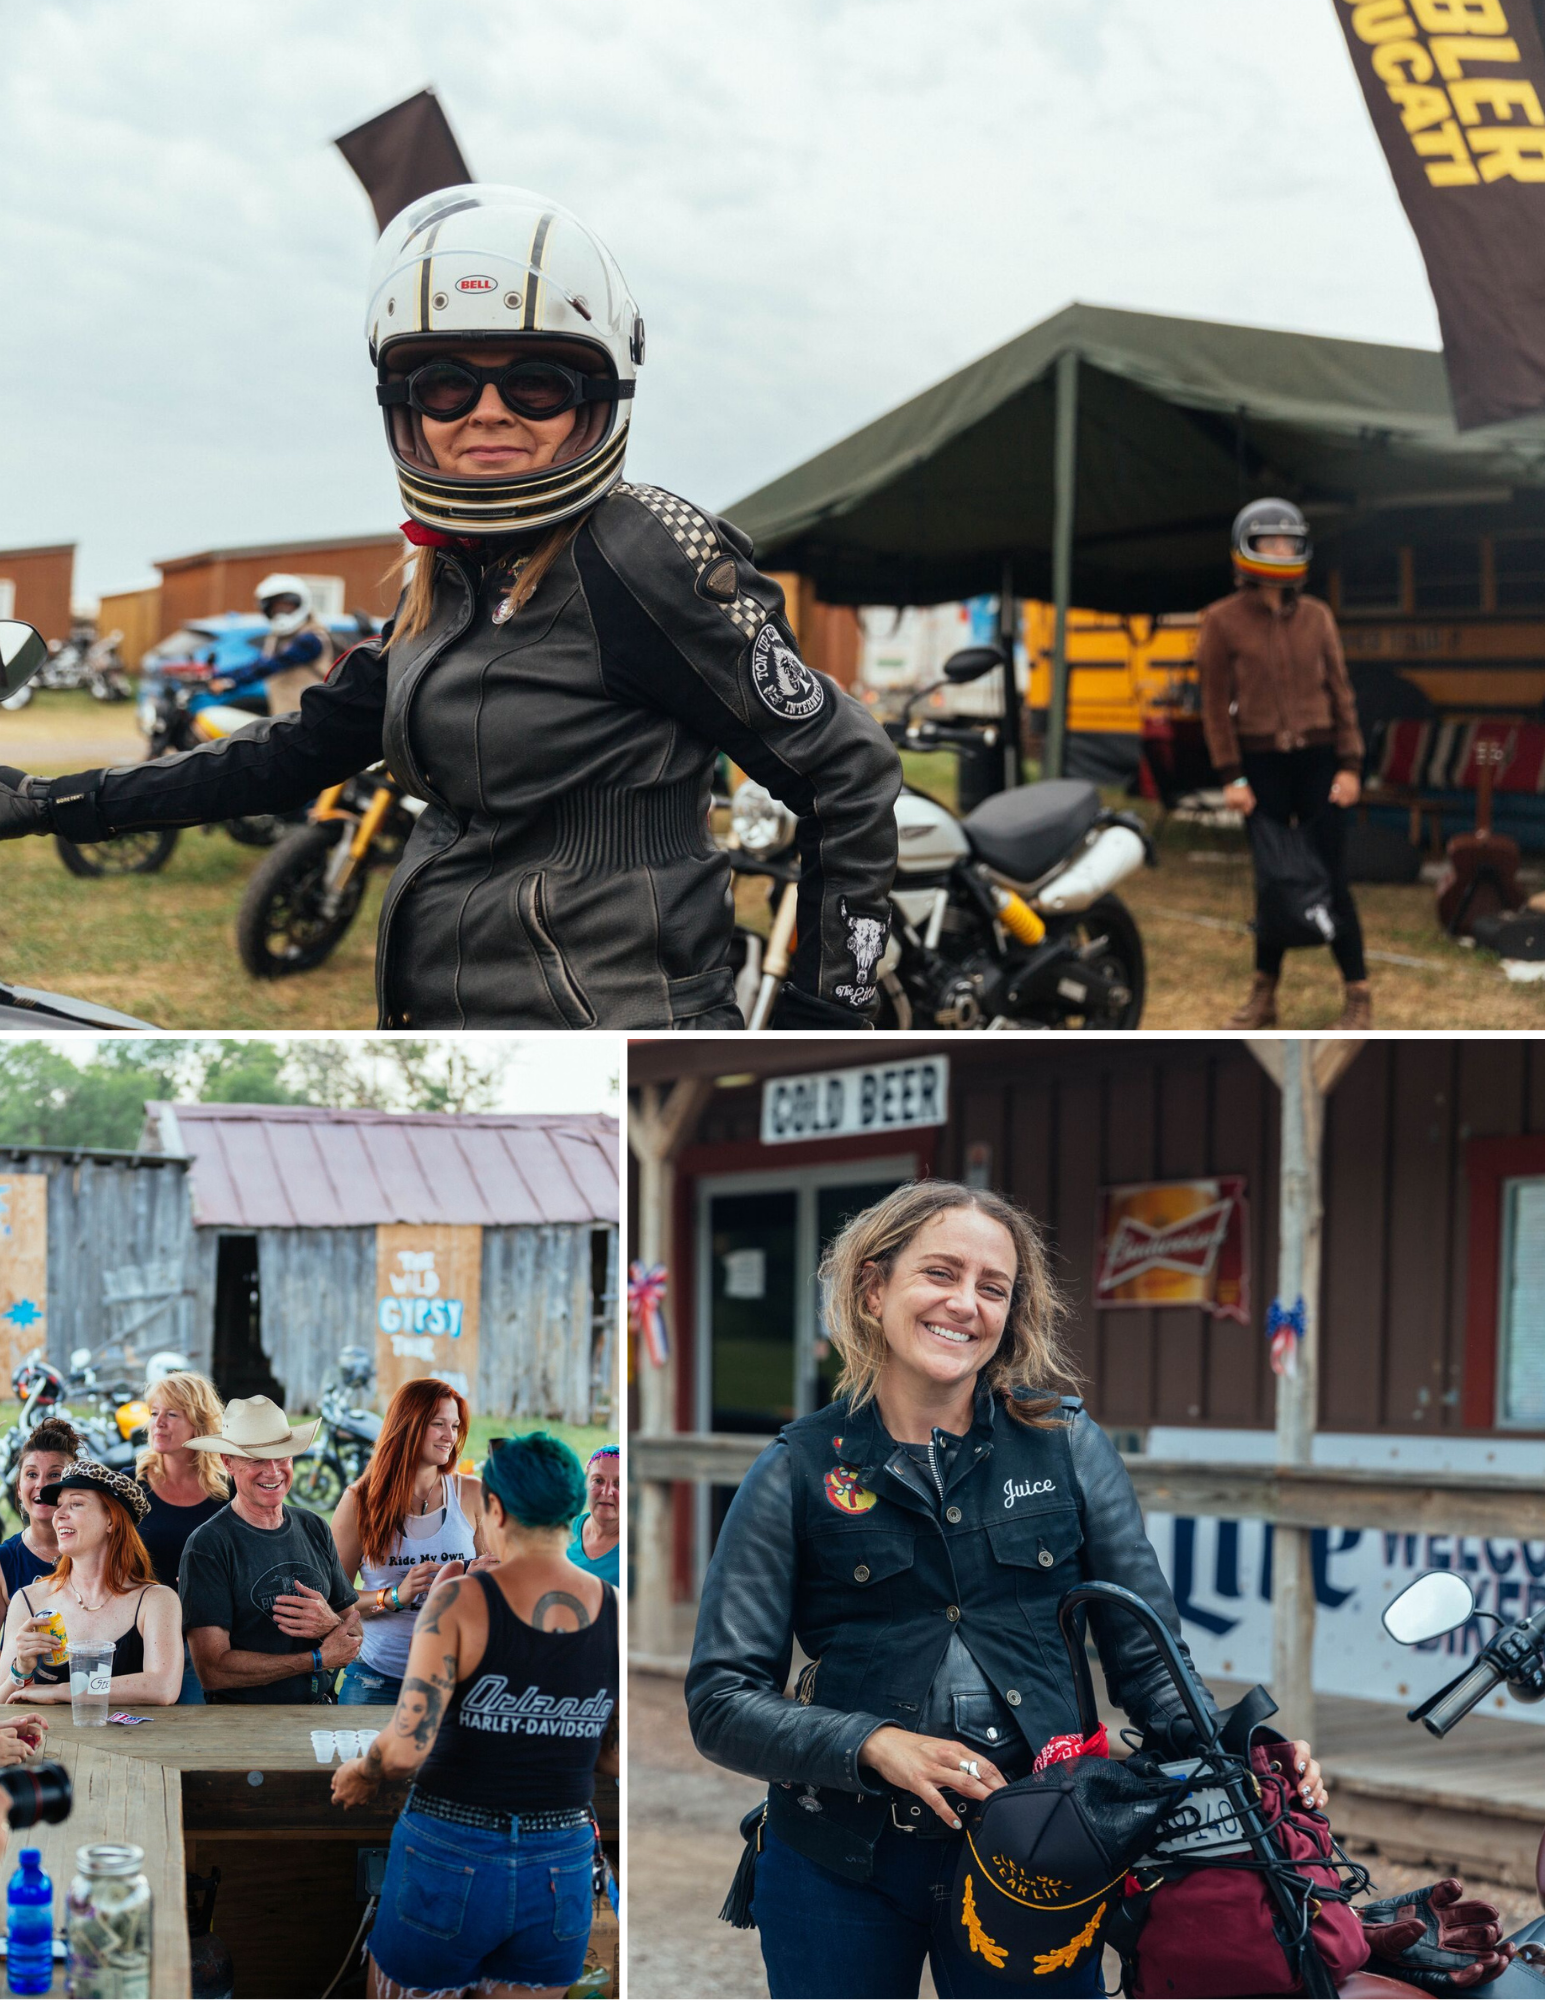 Female motorcyclists getting ready to ride